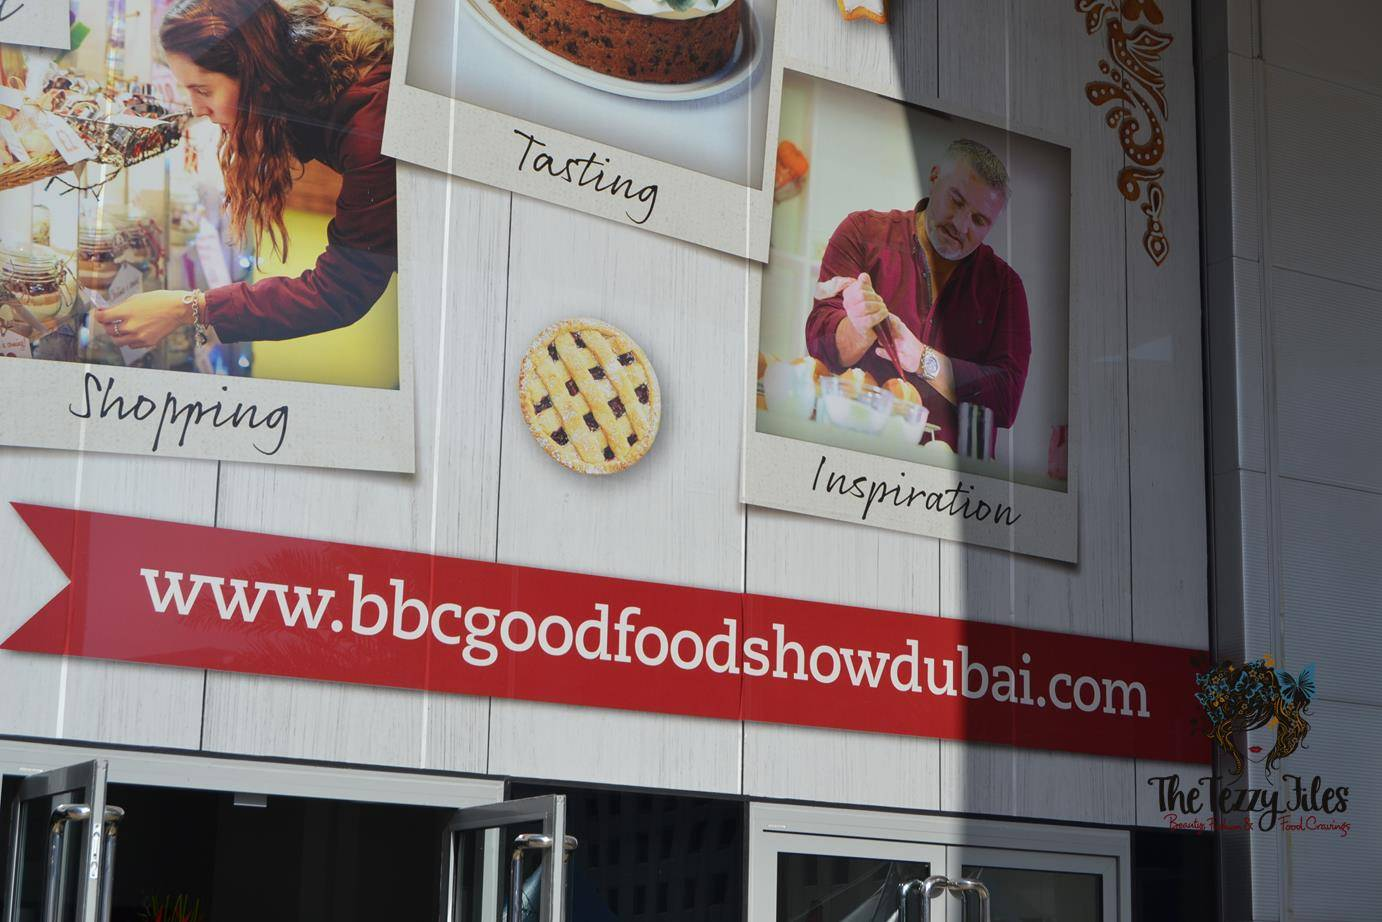 BBC Good Food Show Dubai World Trade Center 2015 Paul Hollywood Lurpak Cake Decoration Christmas (15)